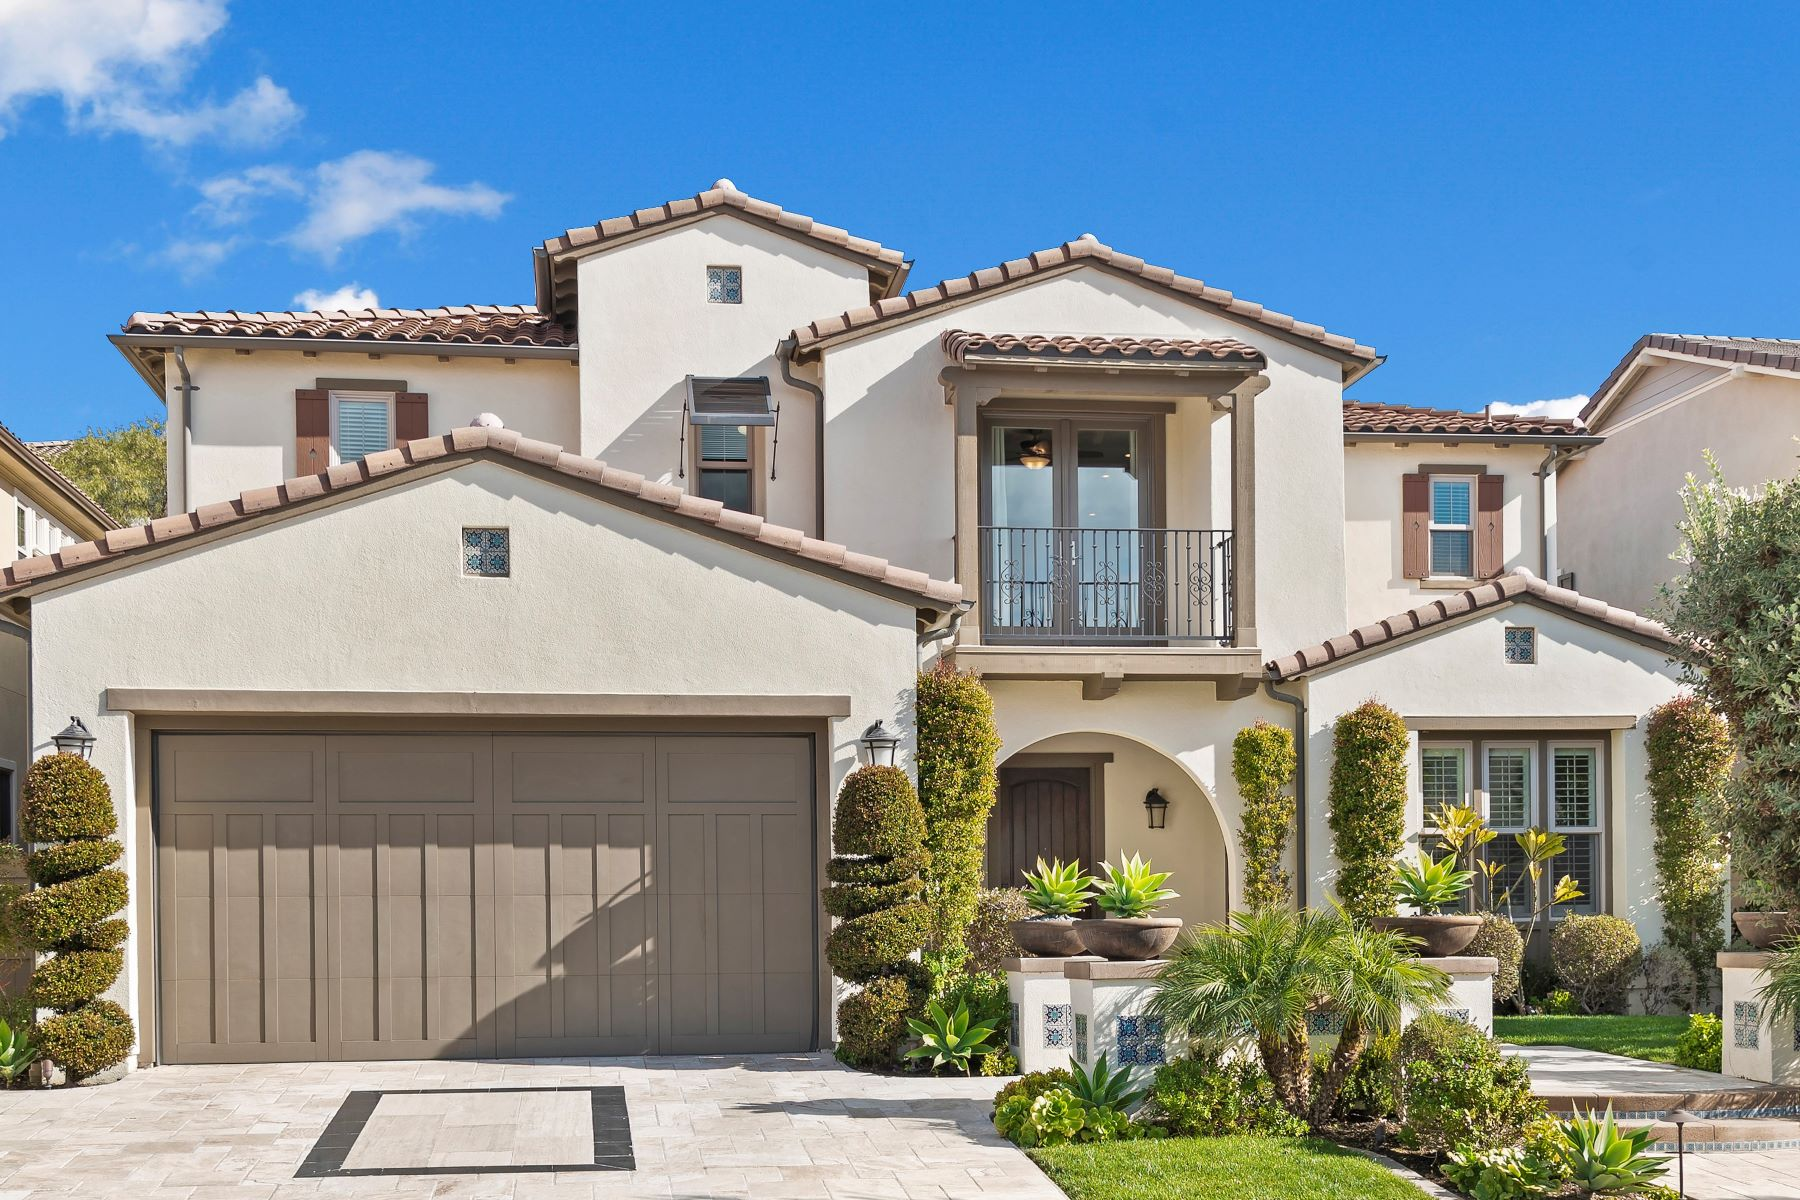 Single Family Homes for Sale at 15 Calle Loyola San Clemente, California 92673 United States